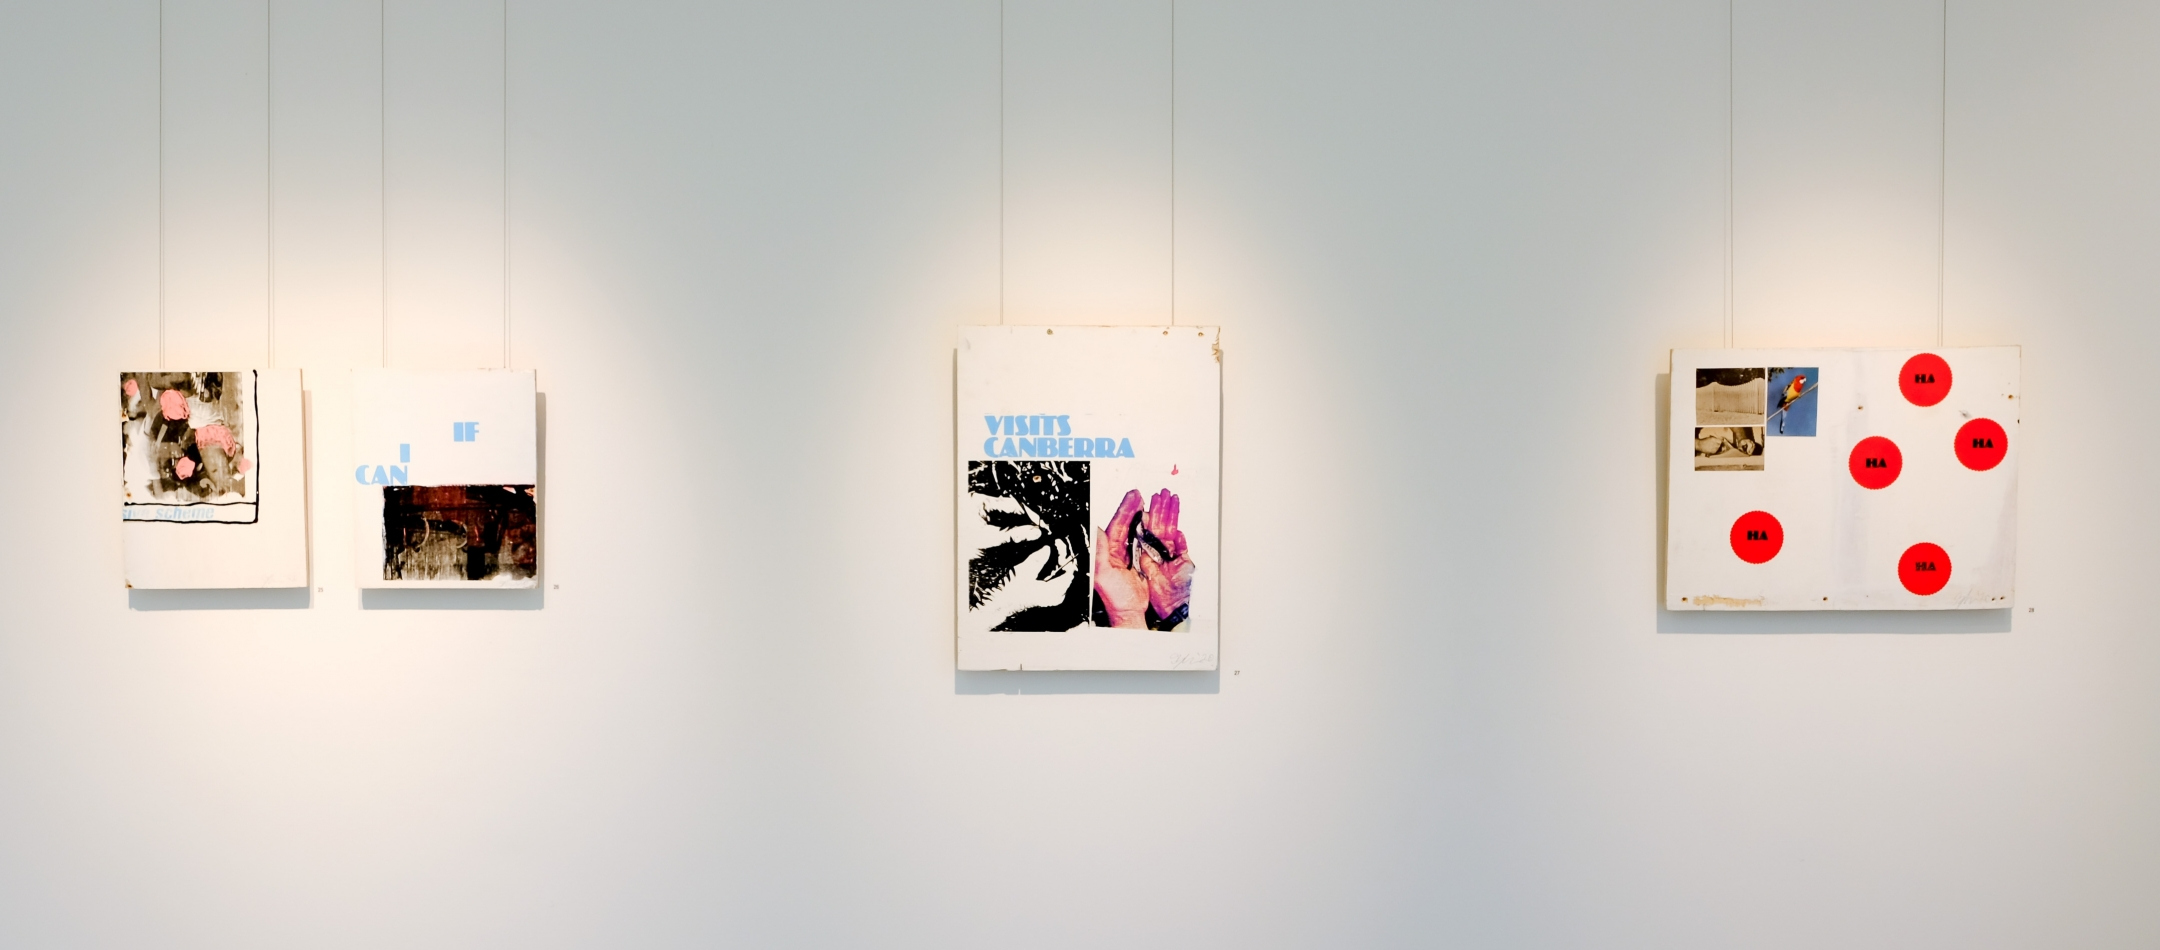 installation view of Jacob Boylan exhibition Dire Contact, at Lone Goat Gallery 2020